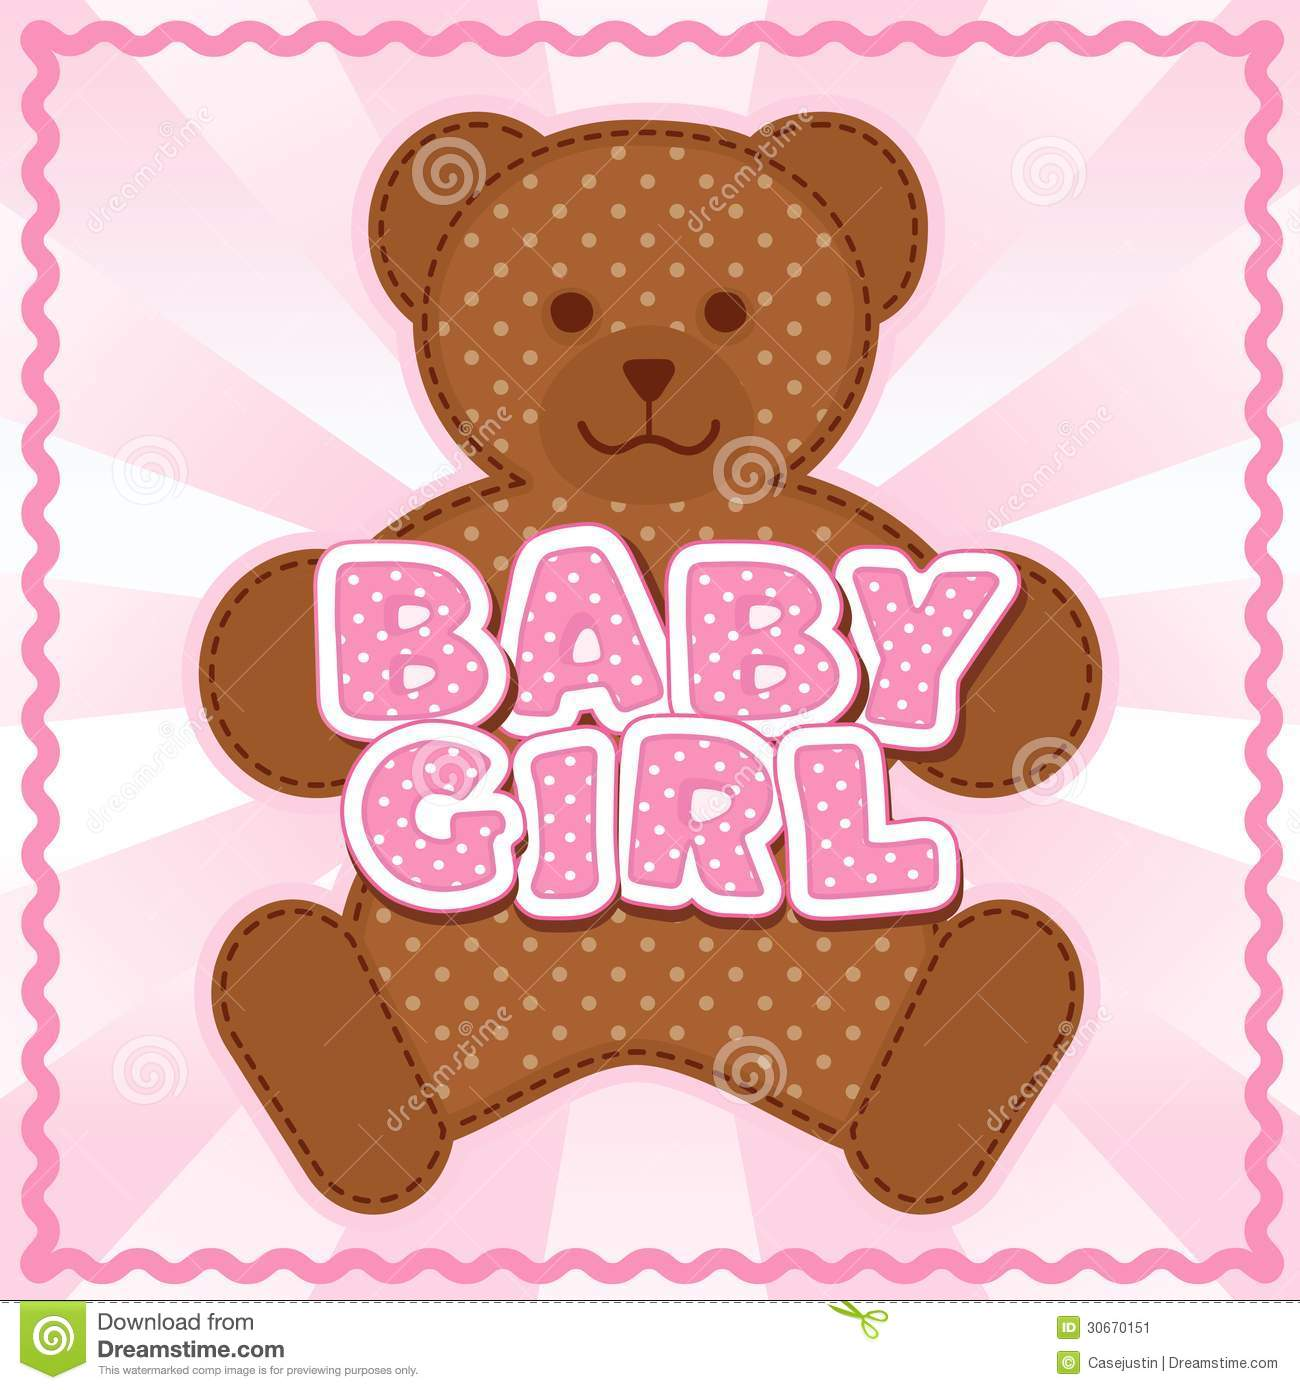 Baby Girl Teddy BearBaby Girl Teddy Bear